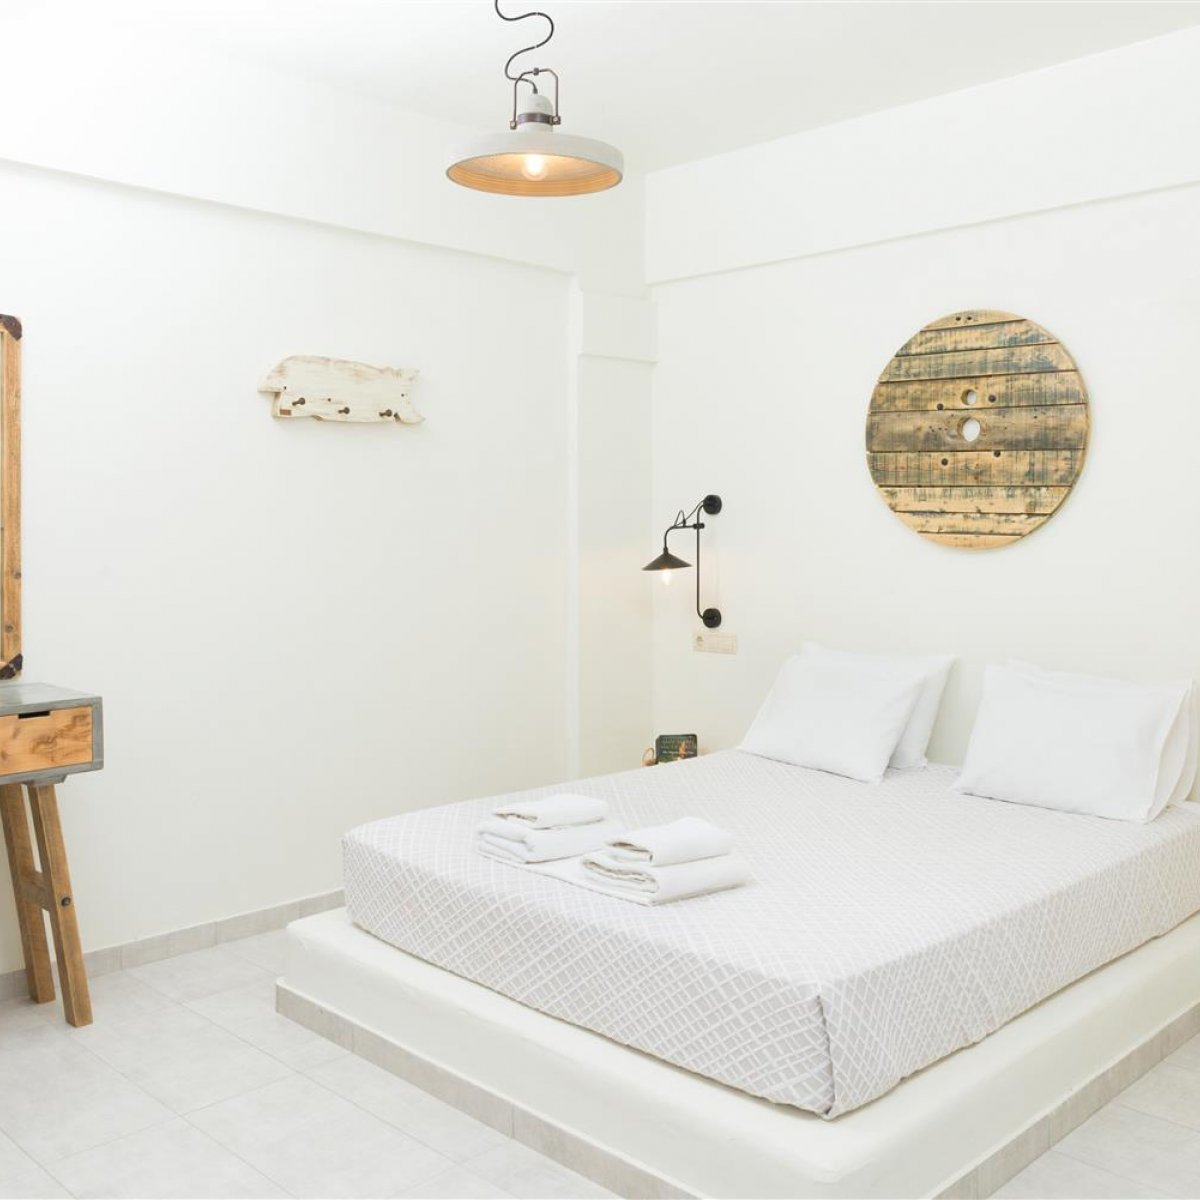 Hotel Sunshine Matala - 2 Bedrooms Apartment Alkioni